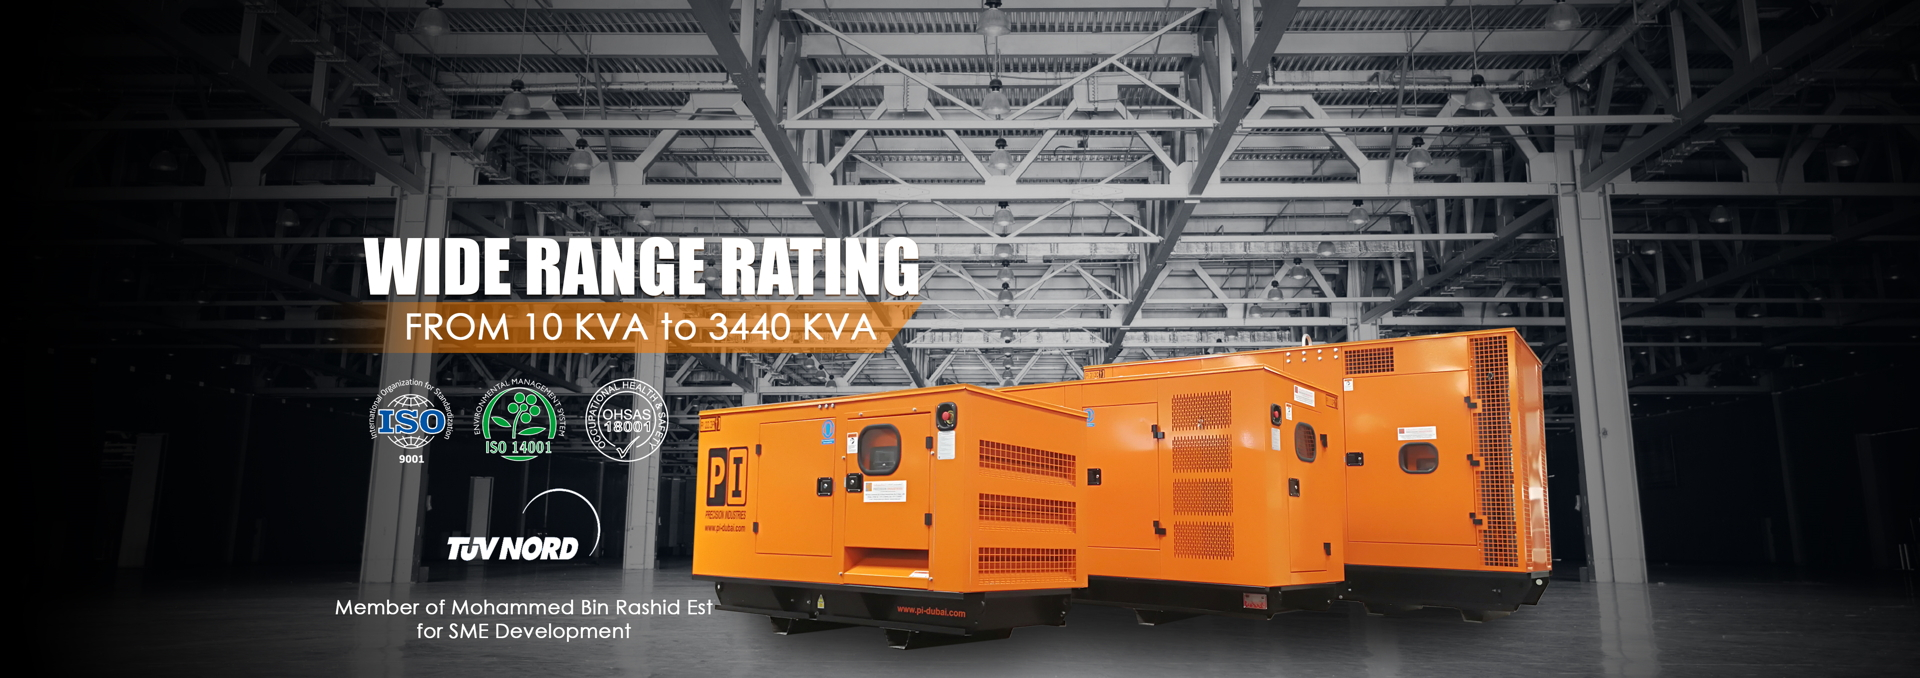 WIDE RANGE RATING From 10 KVA to 3440 KVA